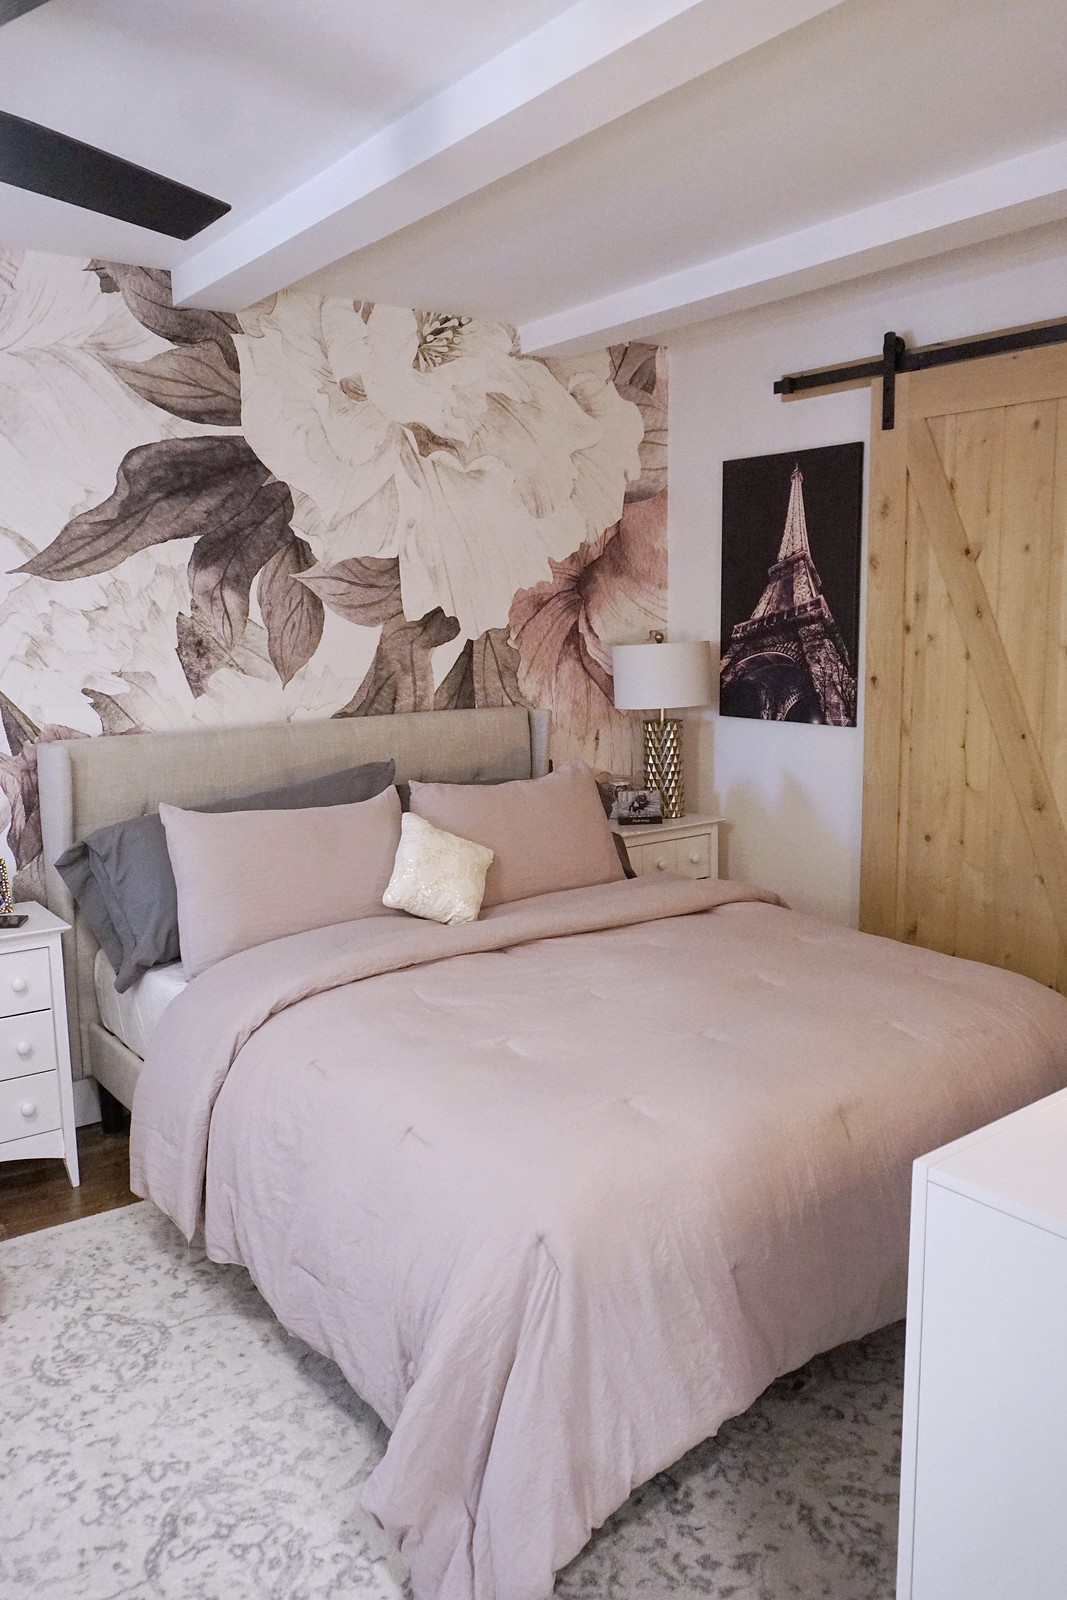 750 square foot New York Apartment After Photos | Feminine Bedroom with Floral Print Mural Wallpaper and Barn Door | Eclectic Modern Decorating Style Home Decor Inspiration